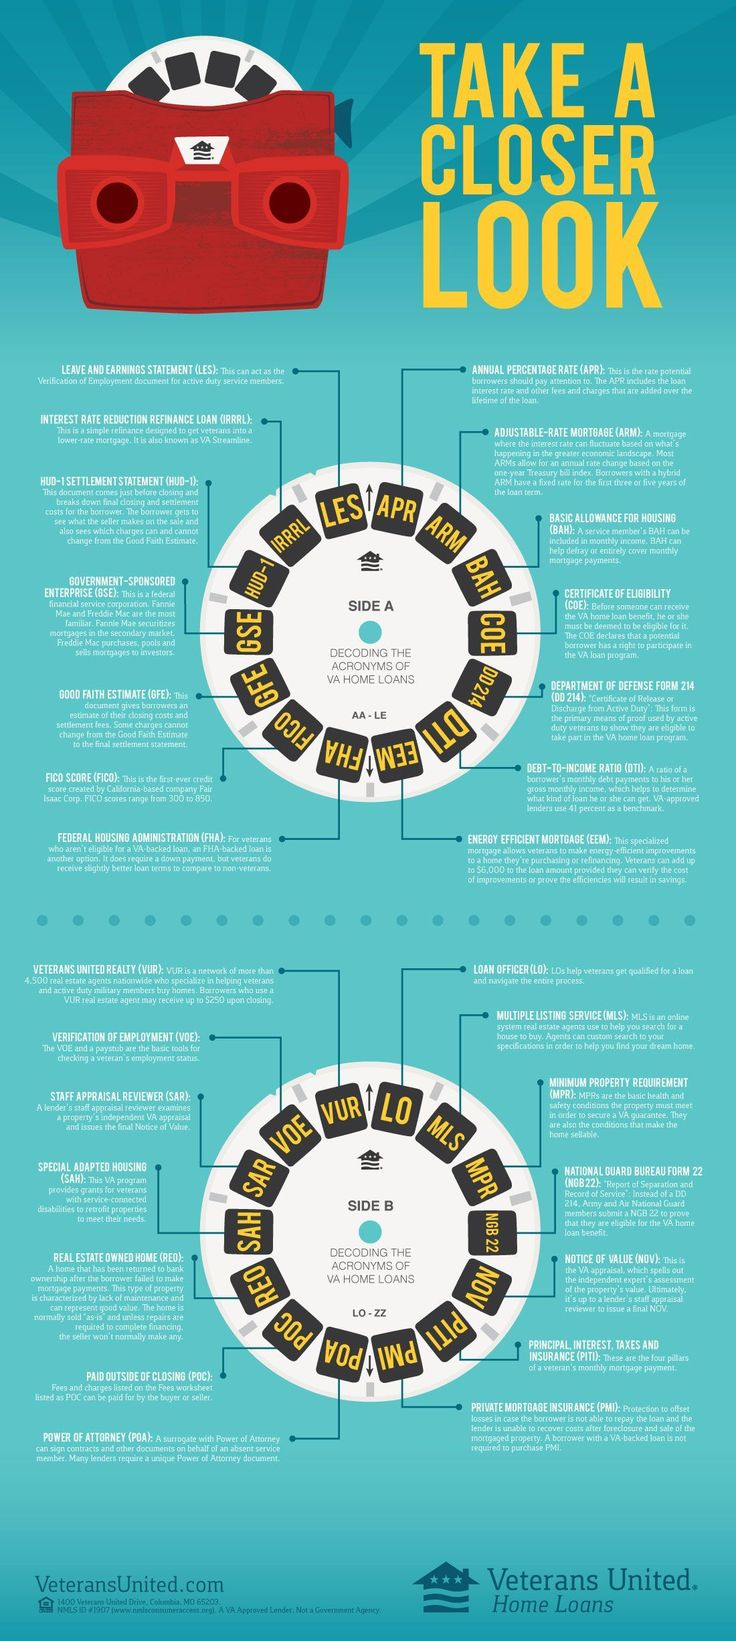 Acronyms Closer Infographic Loan Mortgageloanstake A Closer